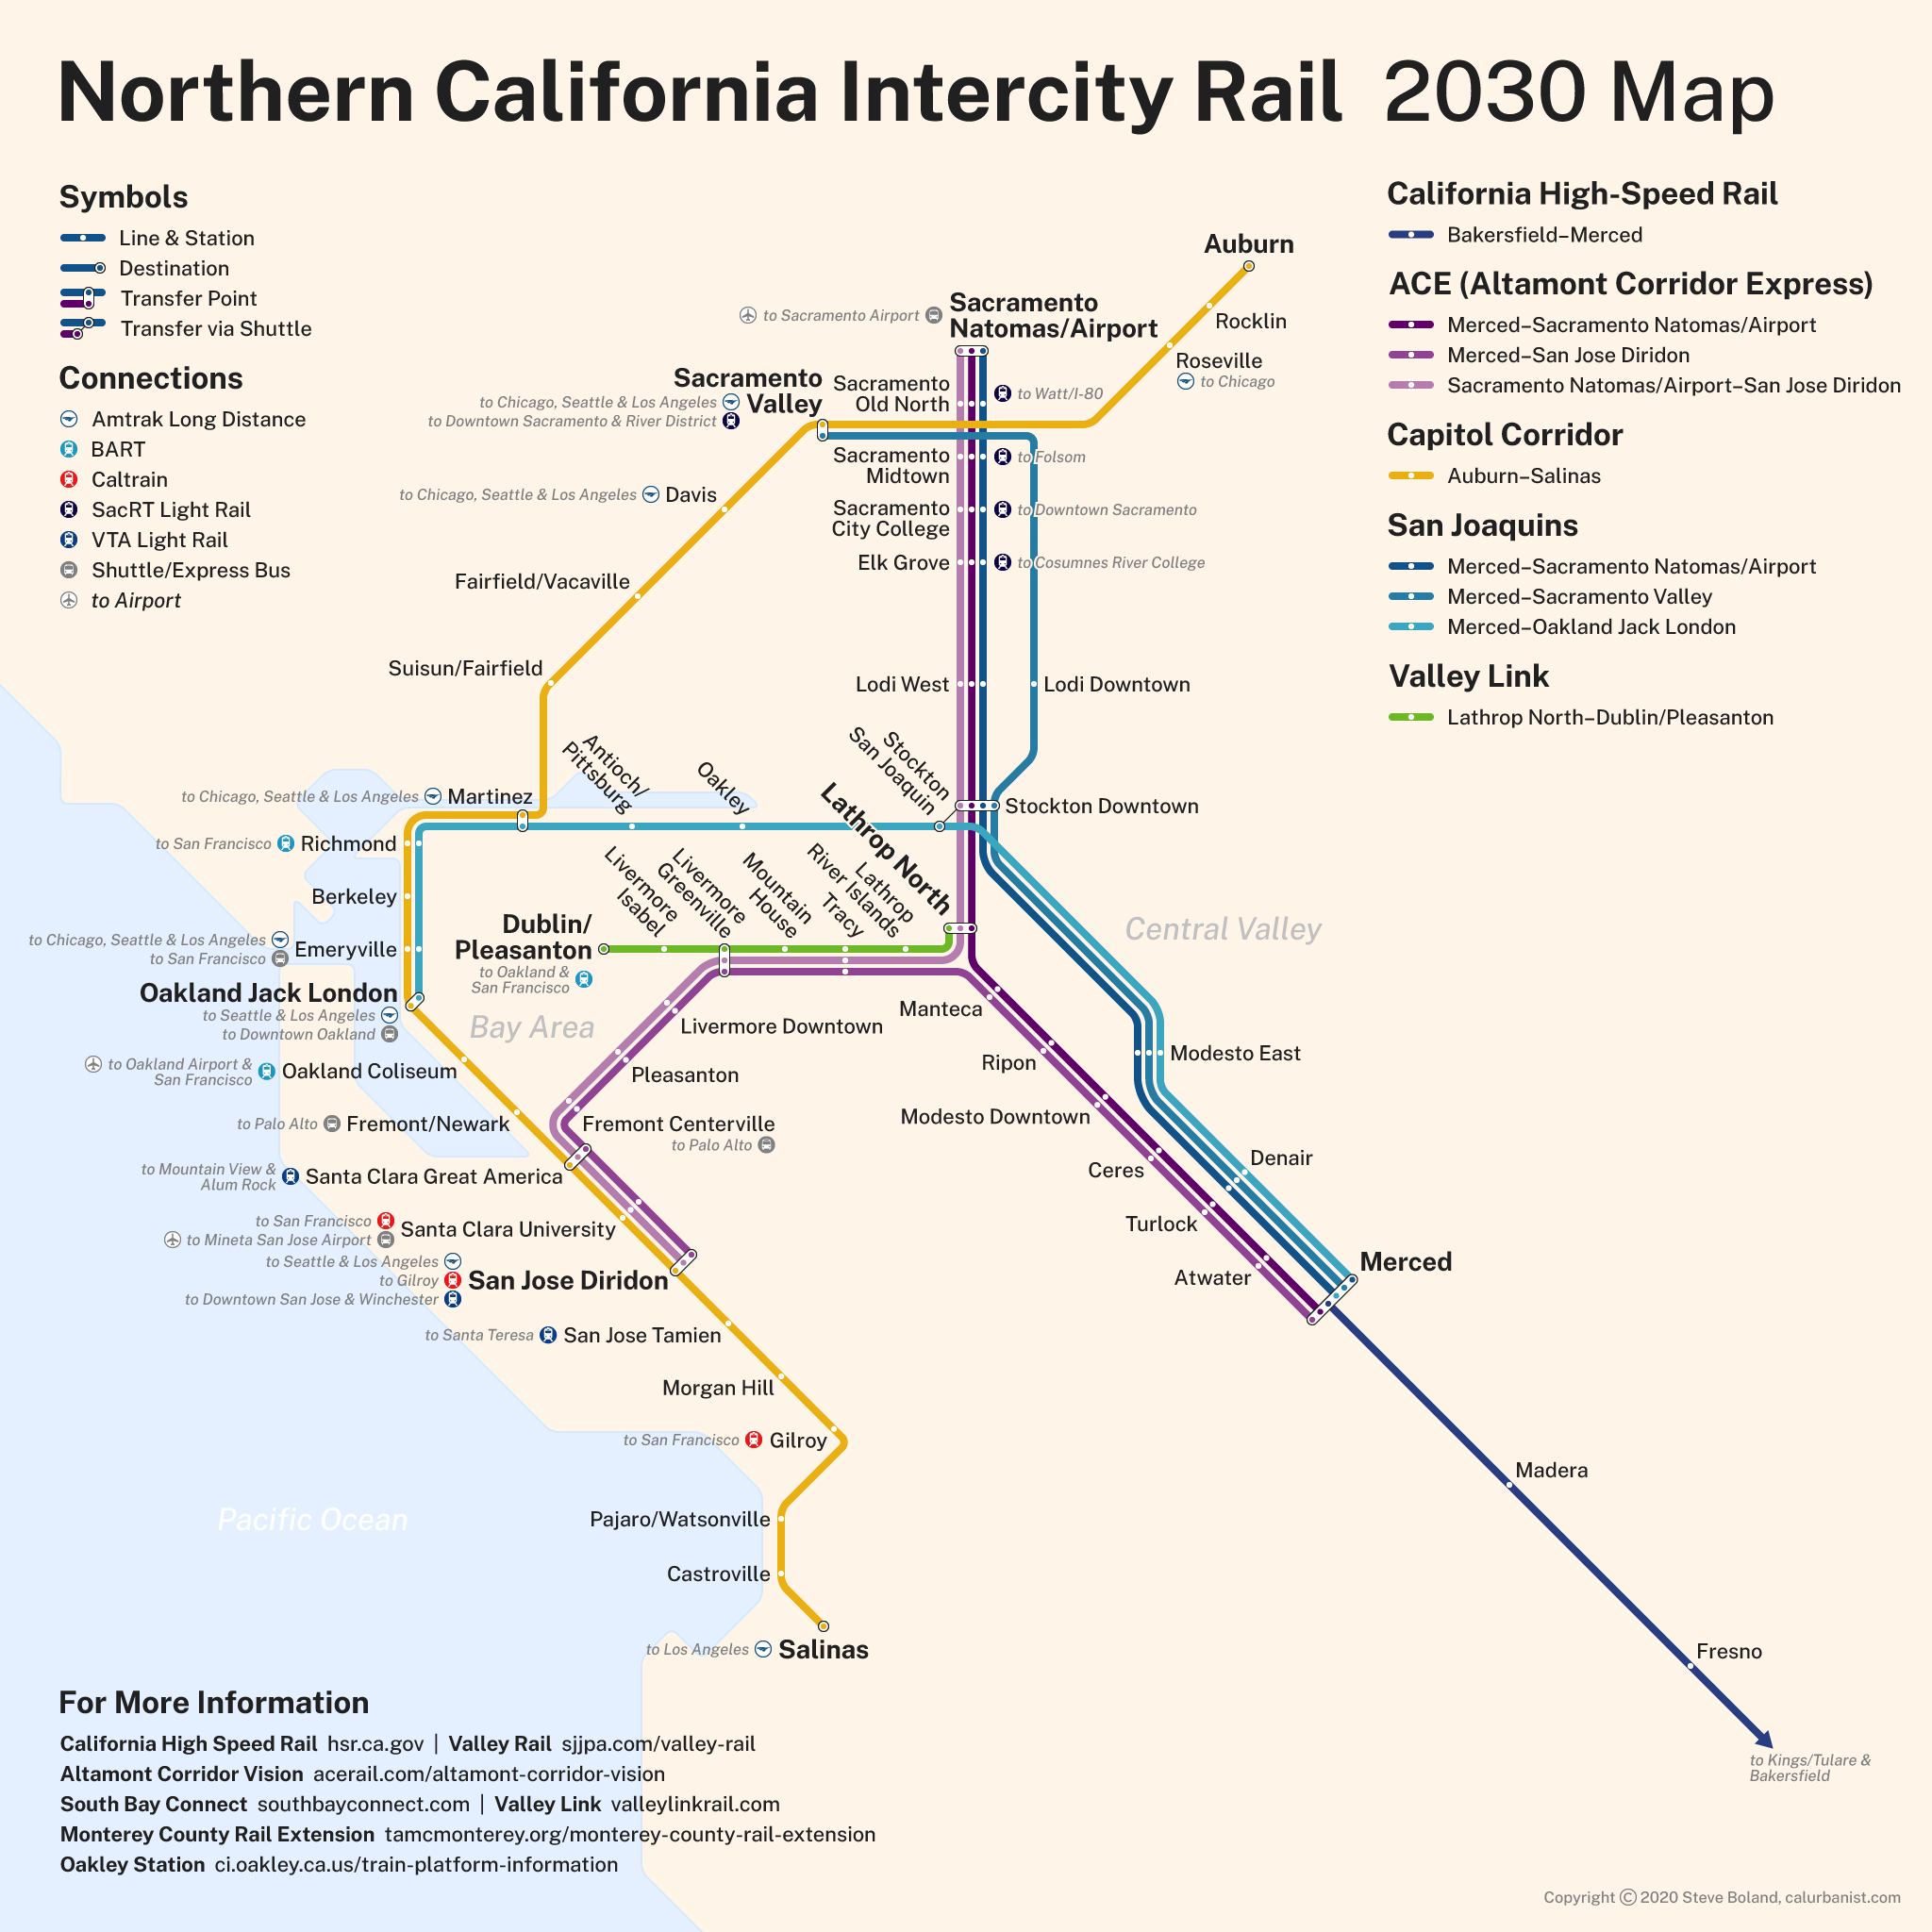 Northern California Intercity Rail Transit Maps By Calurbanist Bay area rapid transit (bart) is a heavy rail rapid transit system in the san francisco bay area in california, united states. transit maps by calurbanist